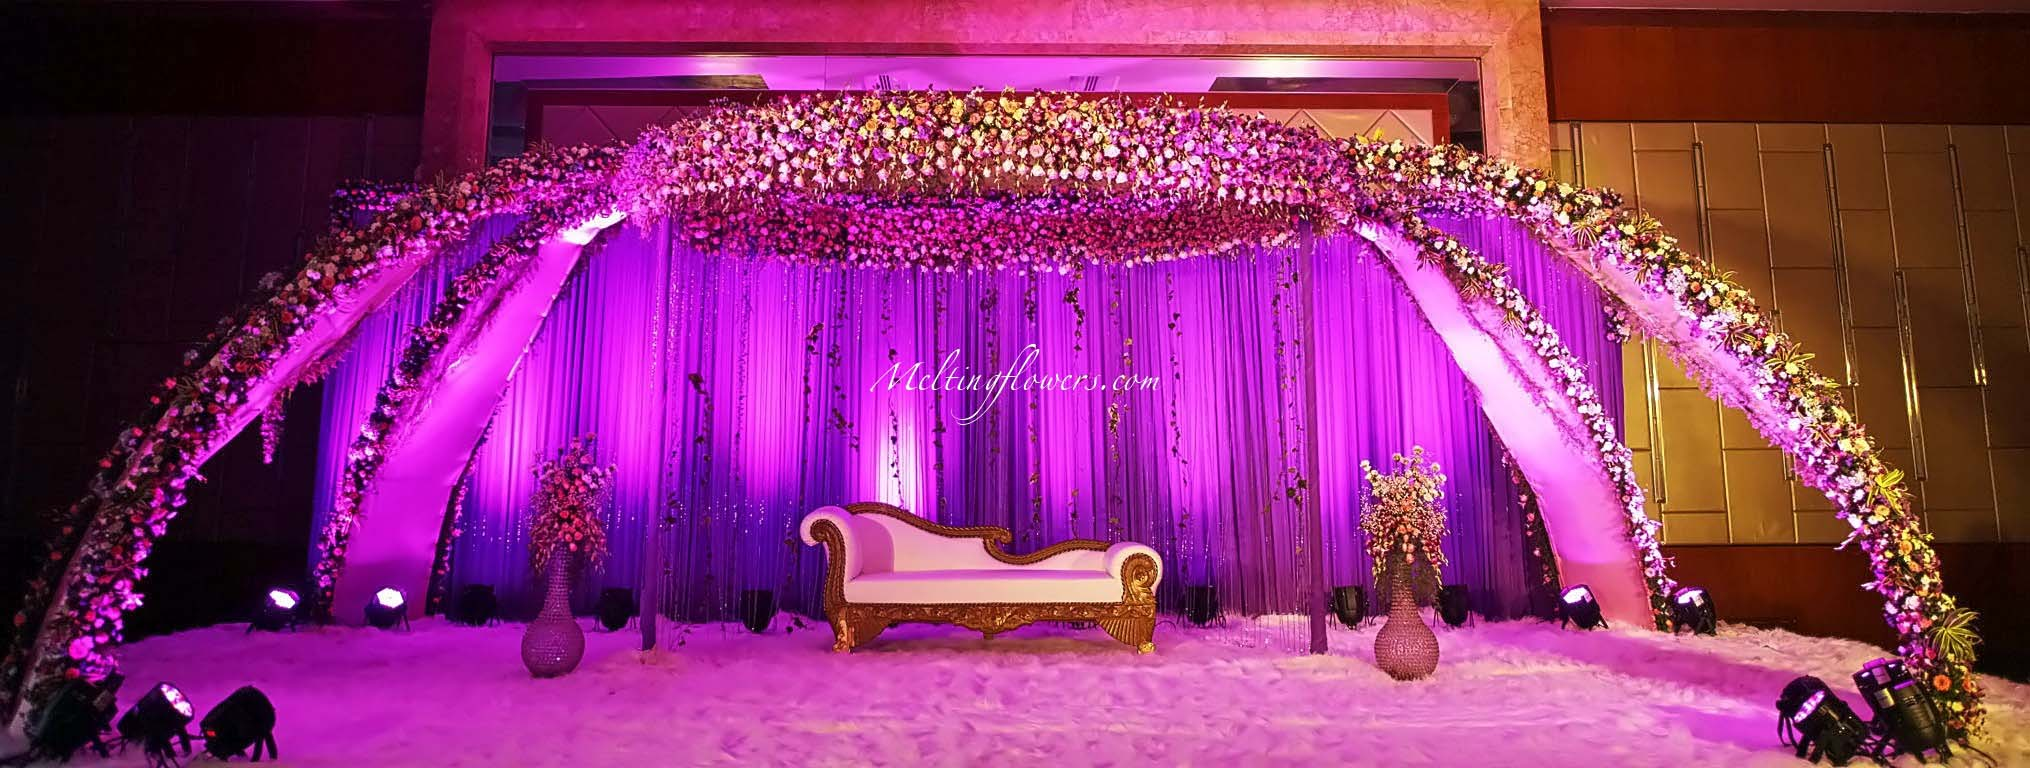 Wedding backdrops backdrop decorations melting flowers for Background decoration